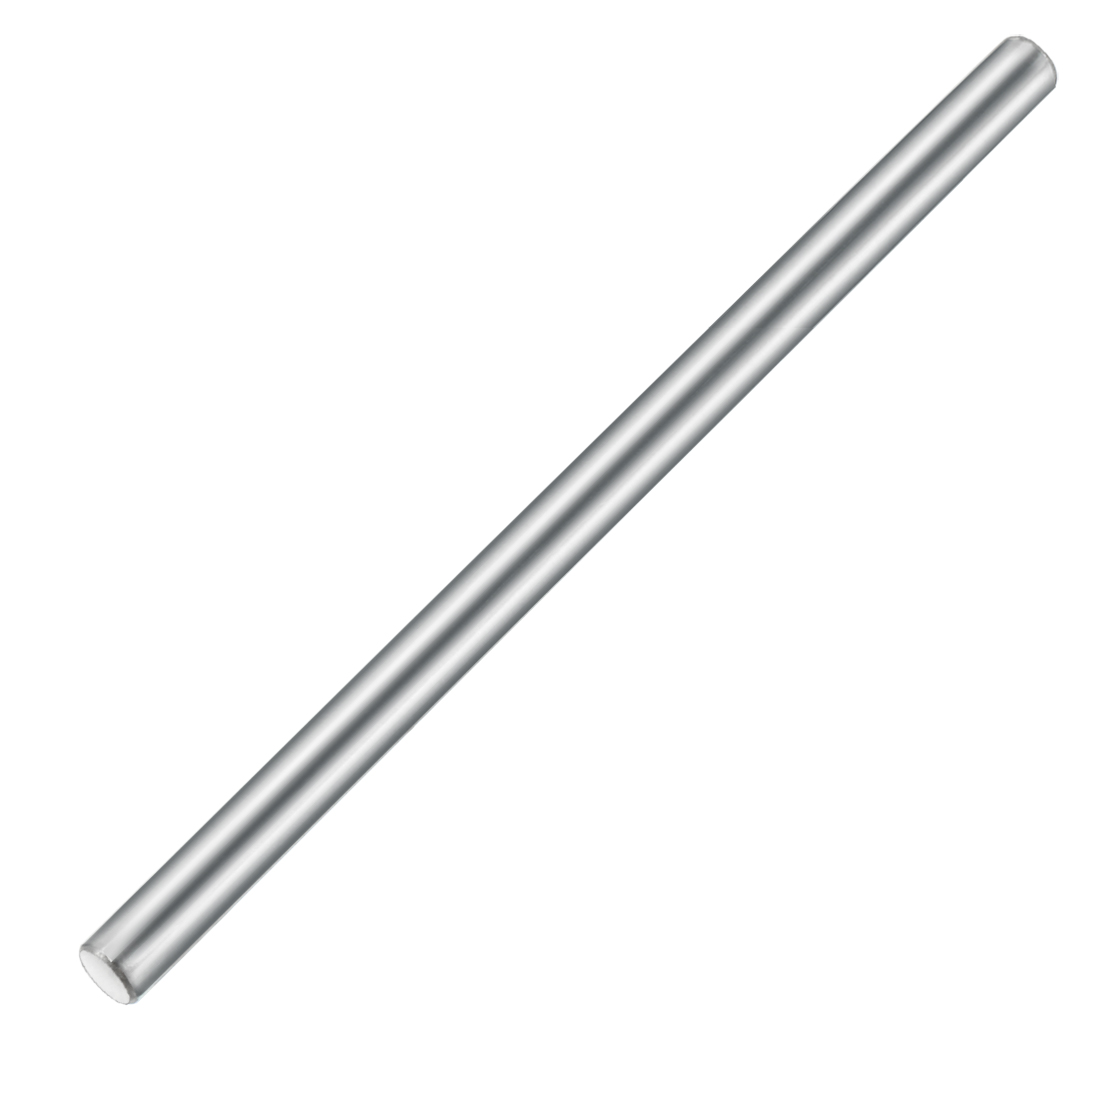 3mm Dia 70mm Length Stainless Steel Solid Round Shaft Rod for RC Model Toy